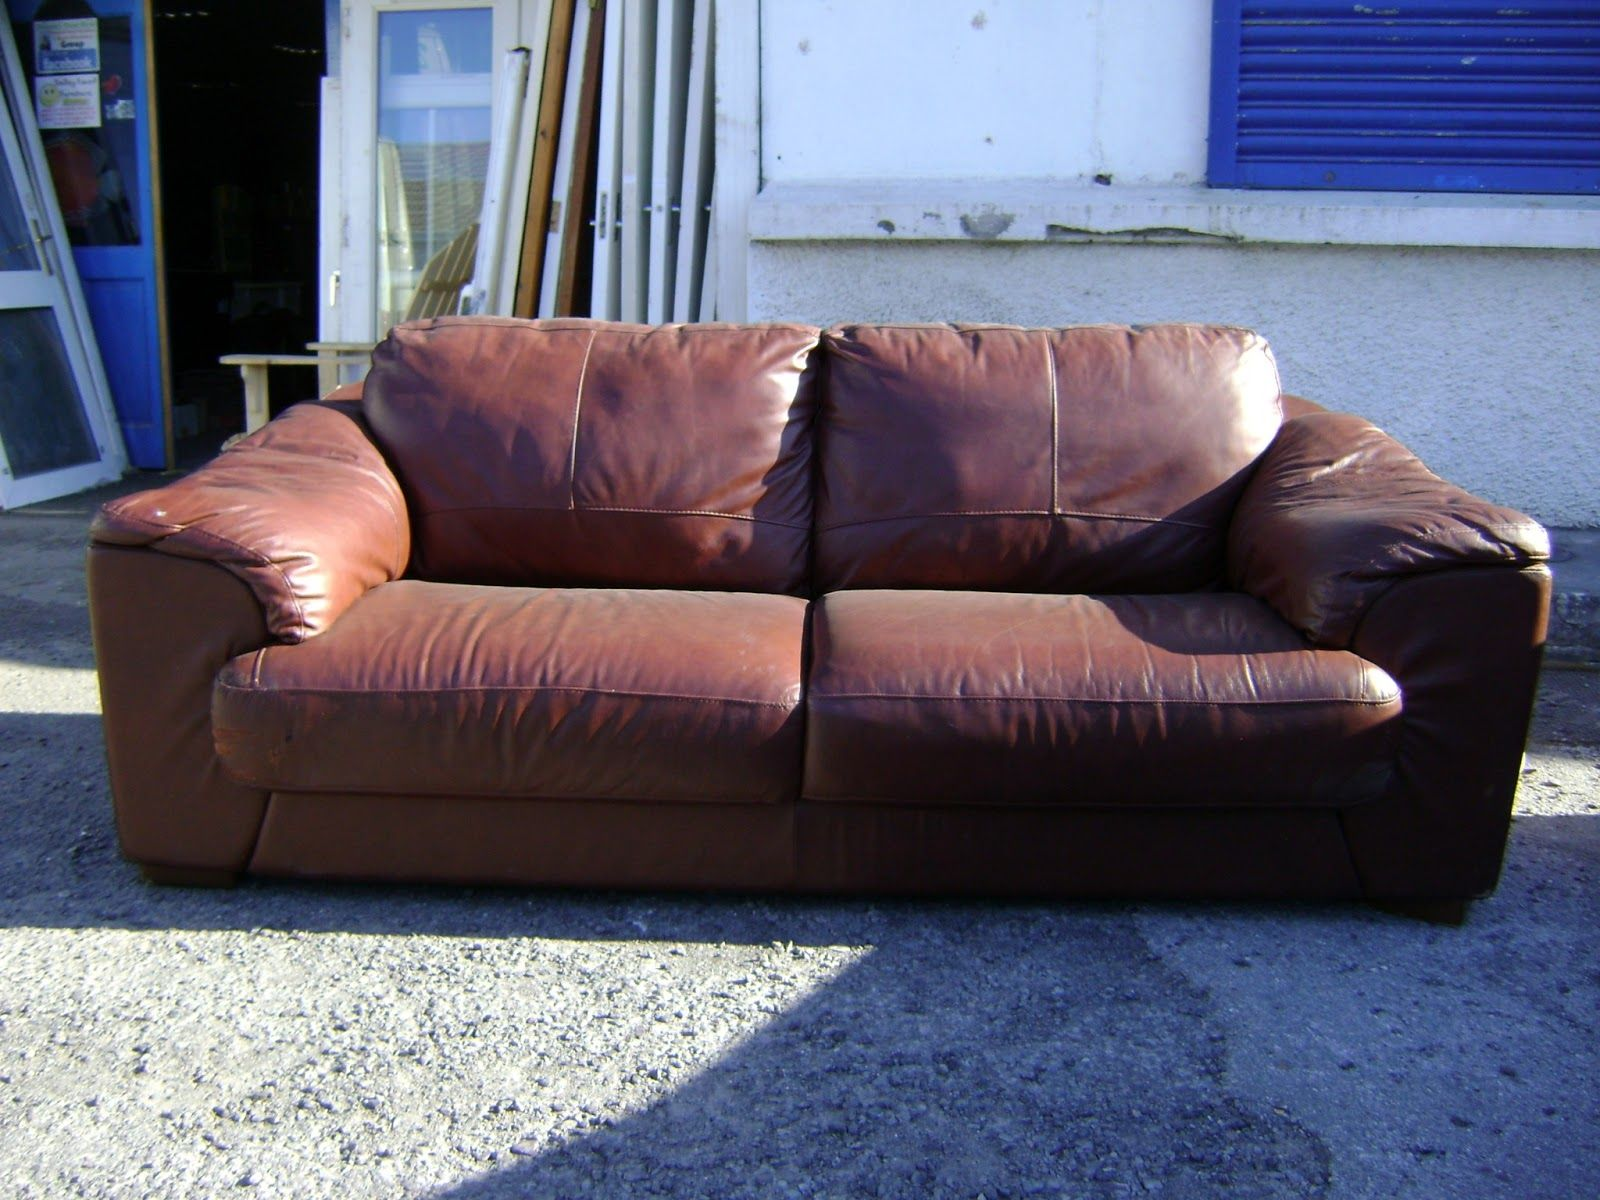 Deccies Done Deal Second Hand Furniture U0026 House Clearances : New Stock  Update 4th April 2013